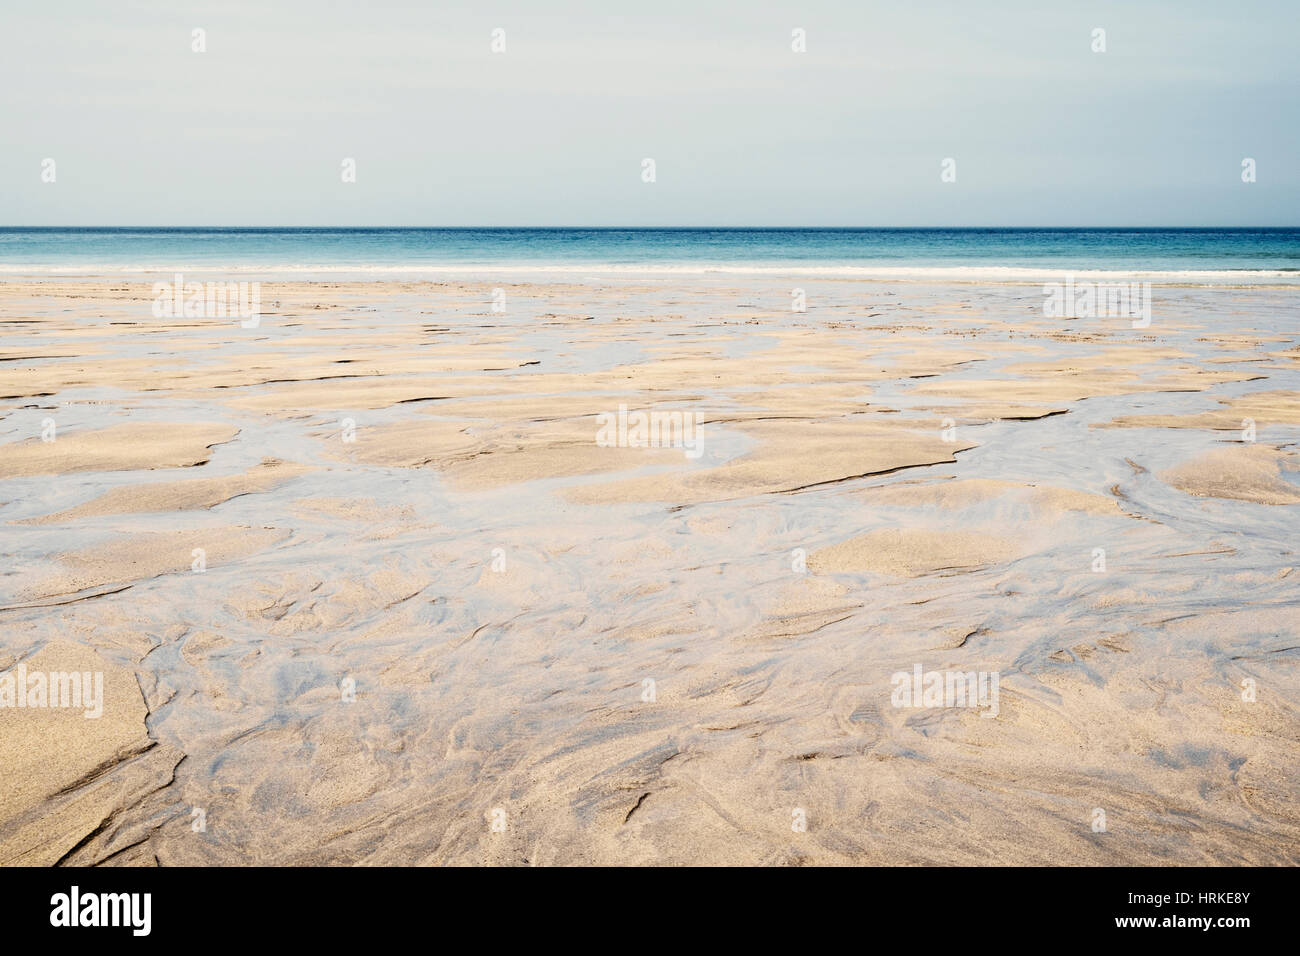 Empty sandy beach in Cornwall, England, UK on a summer day - Stock Image